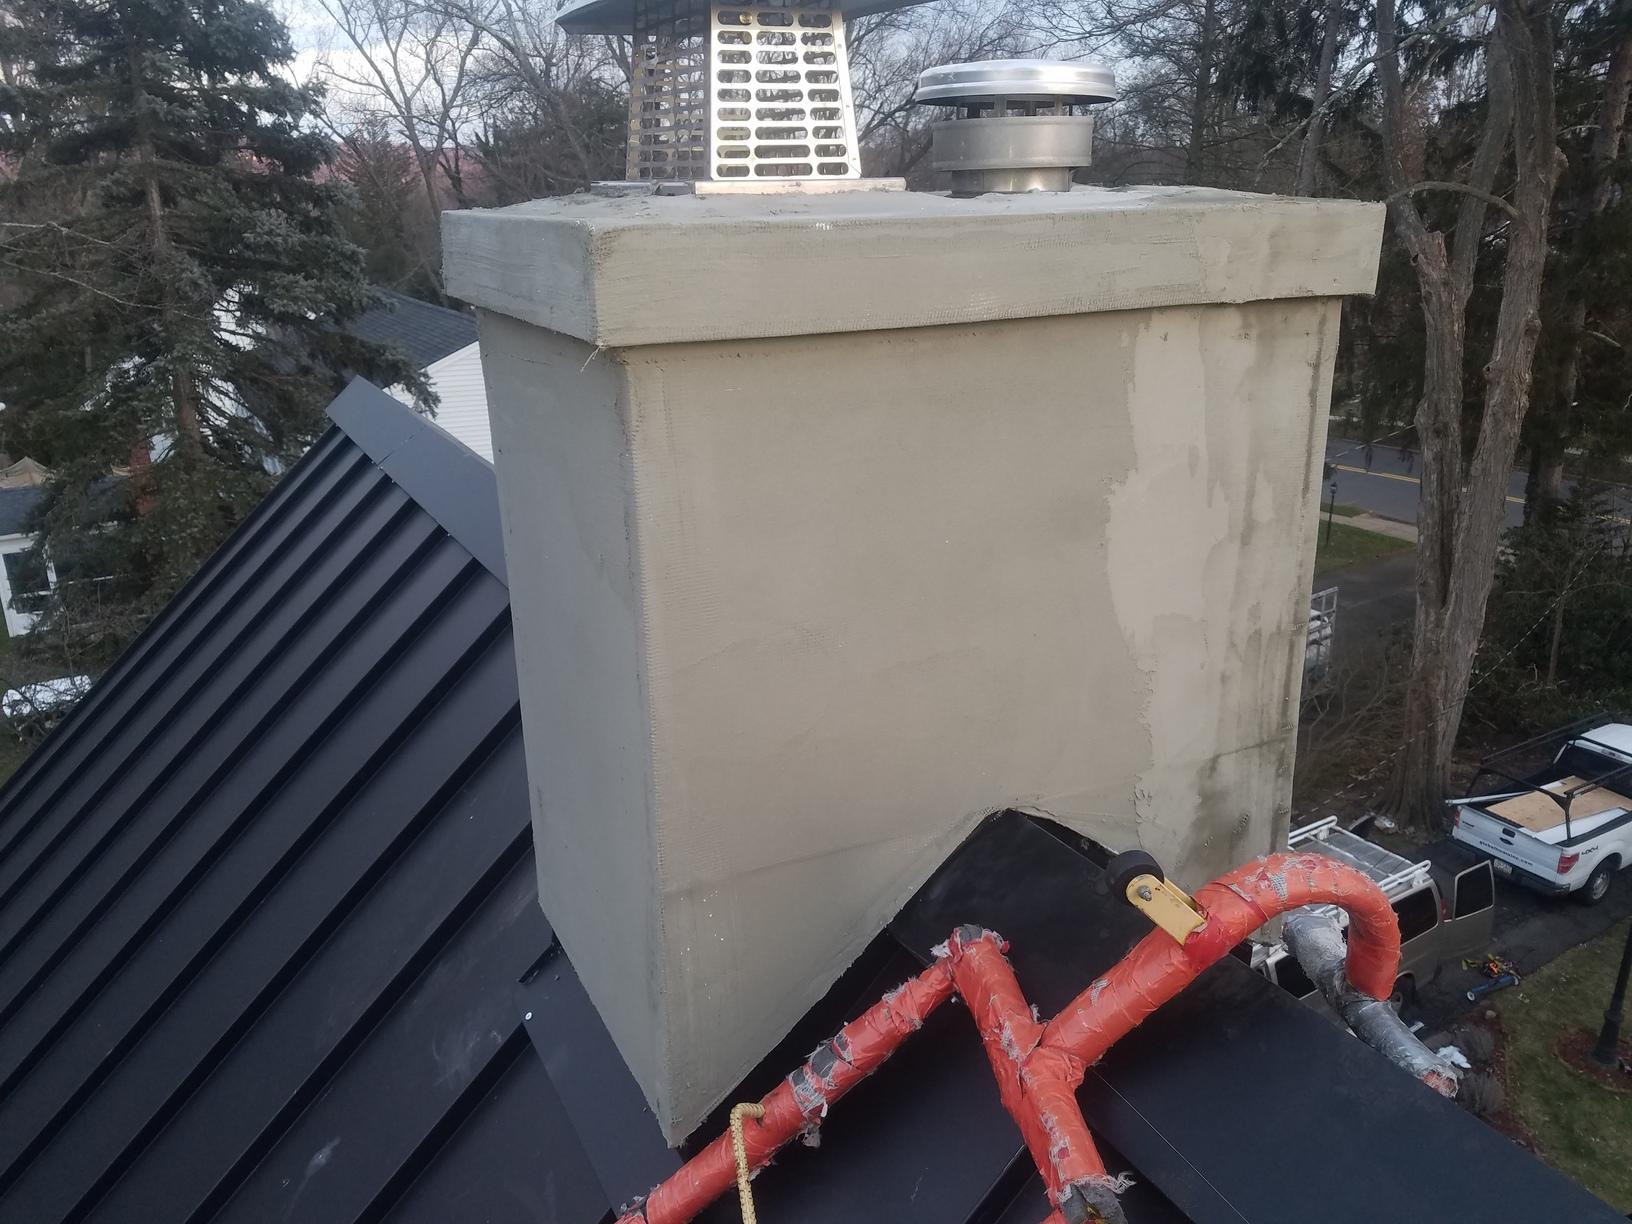 Repairing and Remodeling Chimney in Closter, NJ